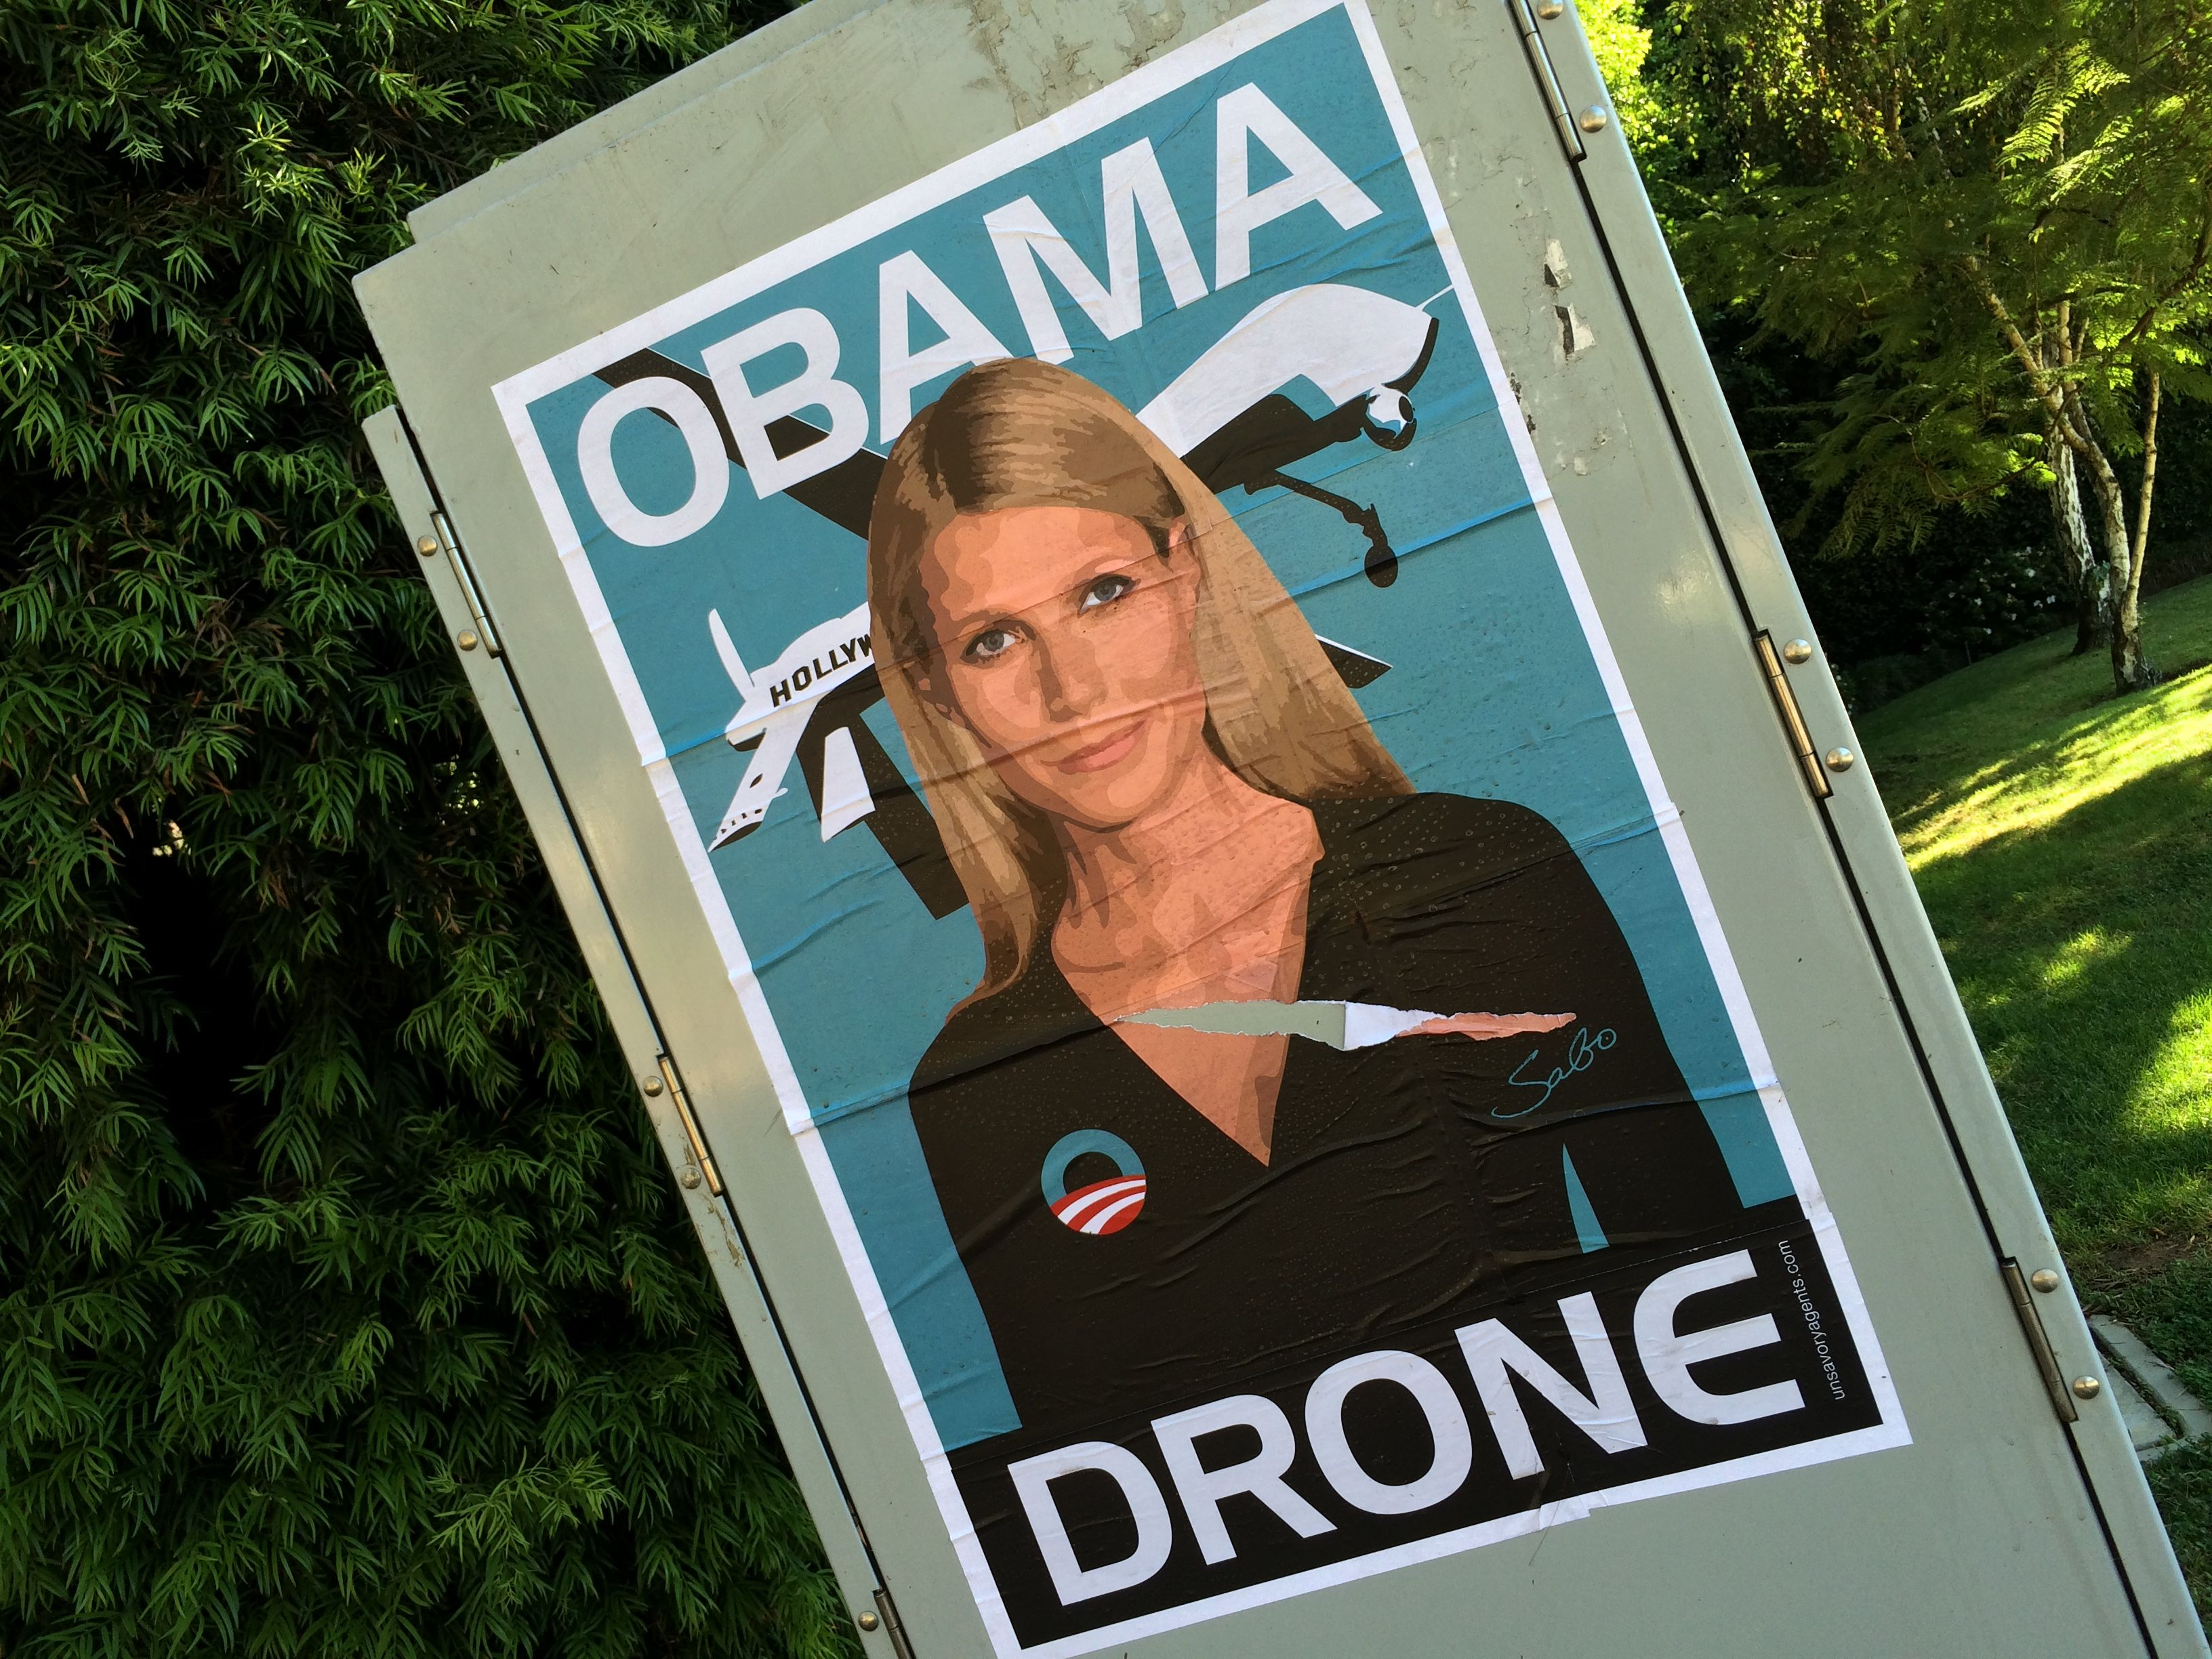 Gwyneth Paltrow Obama Drone posters poster Sabo President Obama DNC fundraiser L.A. Los Angeles Brentwood neighborhood neighbor neighbors hang hanging hung signs plaster plastering plastered traffic signal box boxes lamp posts bus benches anonymous conservative street artist provocative controversial subversive Unsavory Agents UnsavoryAgents outside political Democrats Democrat drones Predator plane planes flying background actor actress home house host hosting gala green